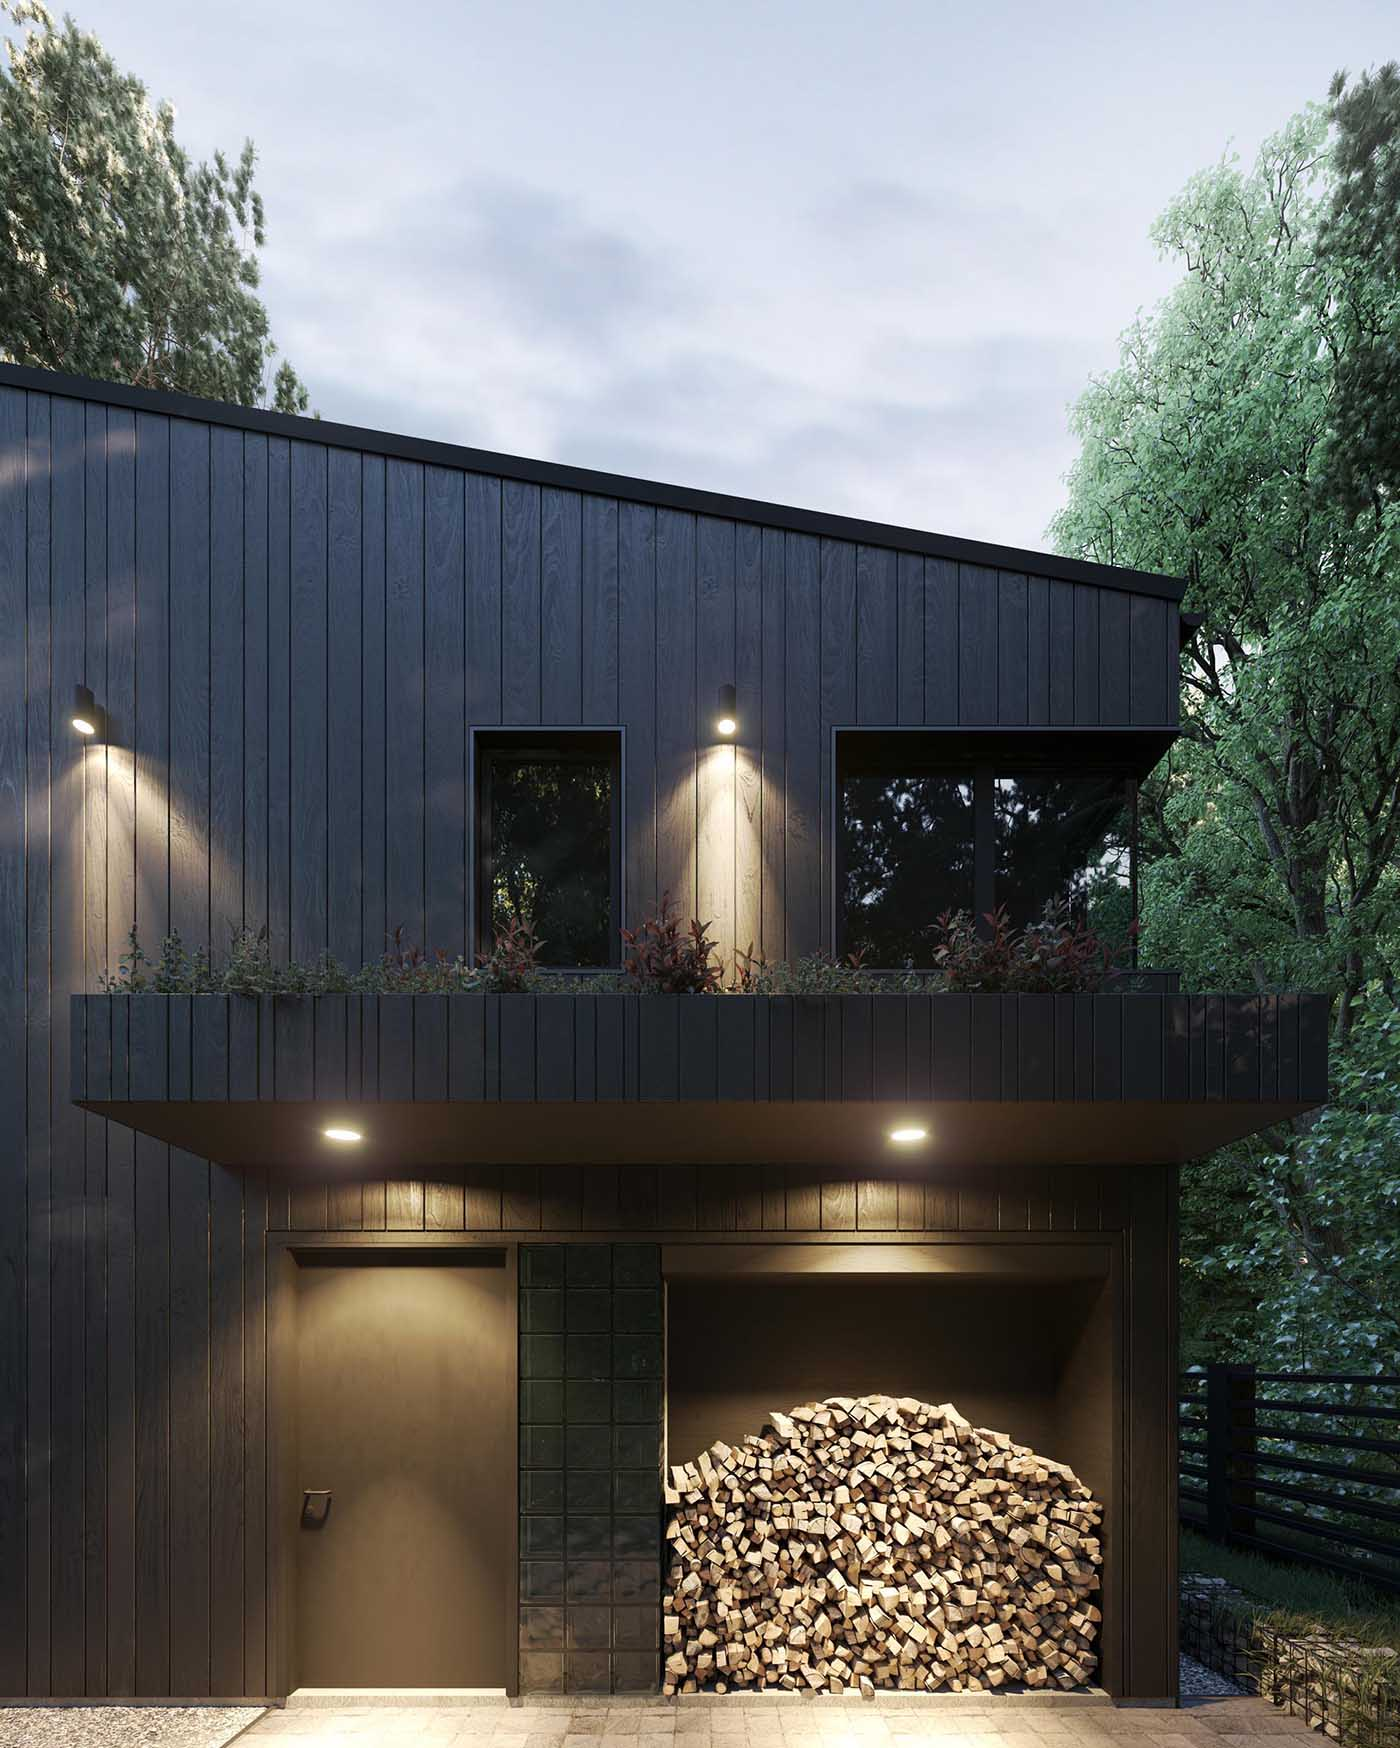 A modern house with dark wood siding, black window frames, firewood storage, and a green roof.